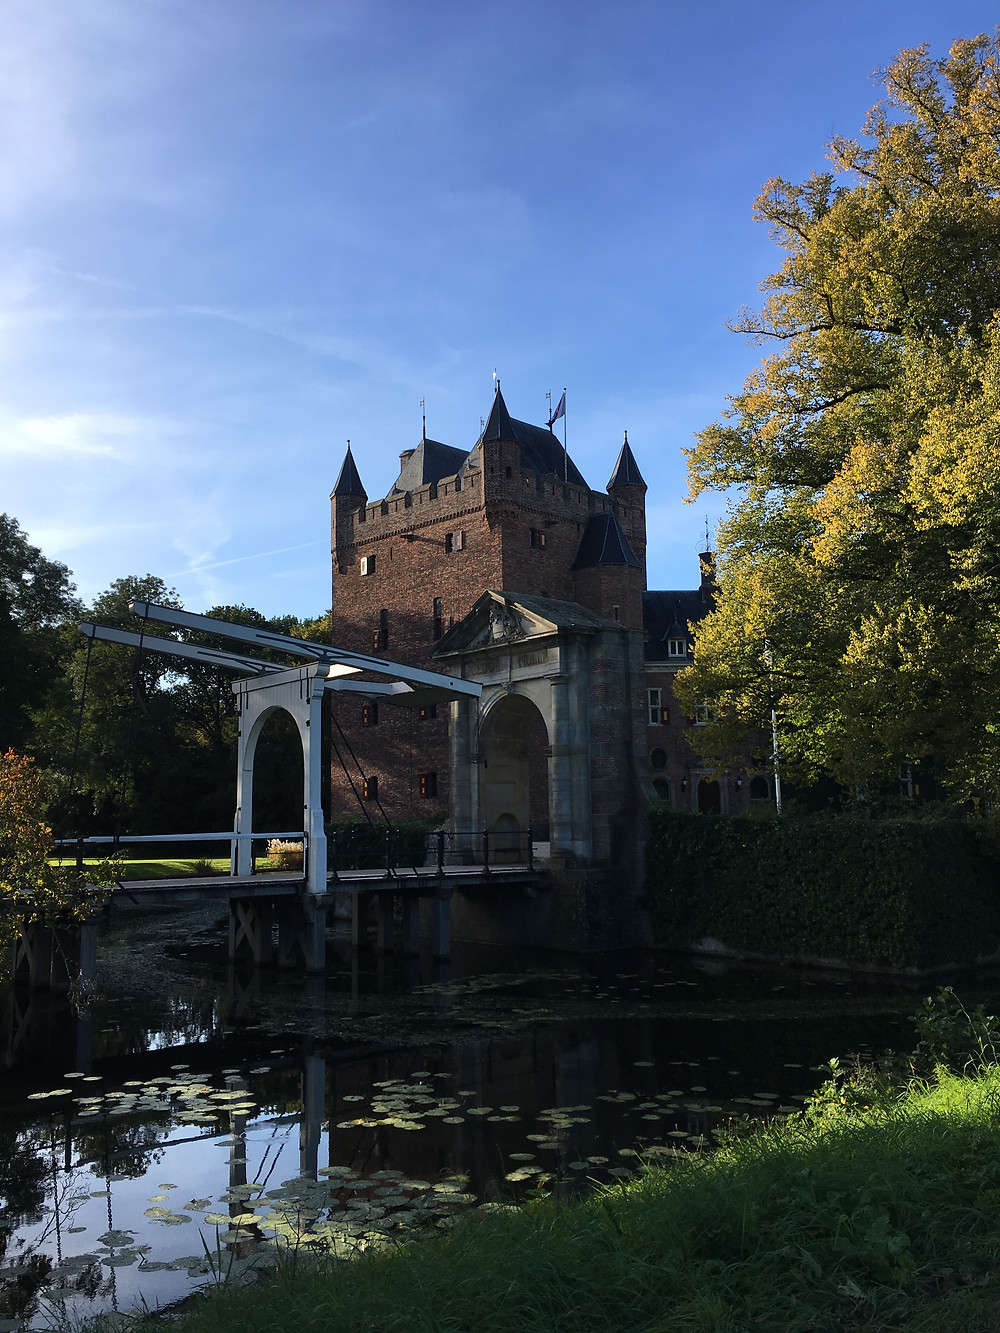 Nyenrode Business Universiteit in Breukelen (by HungrigaufMeer)